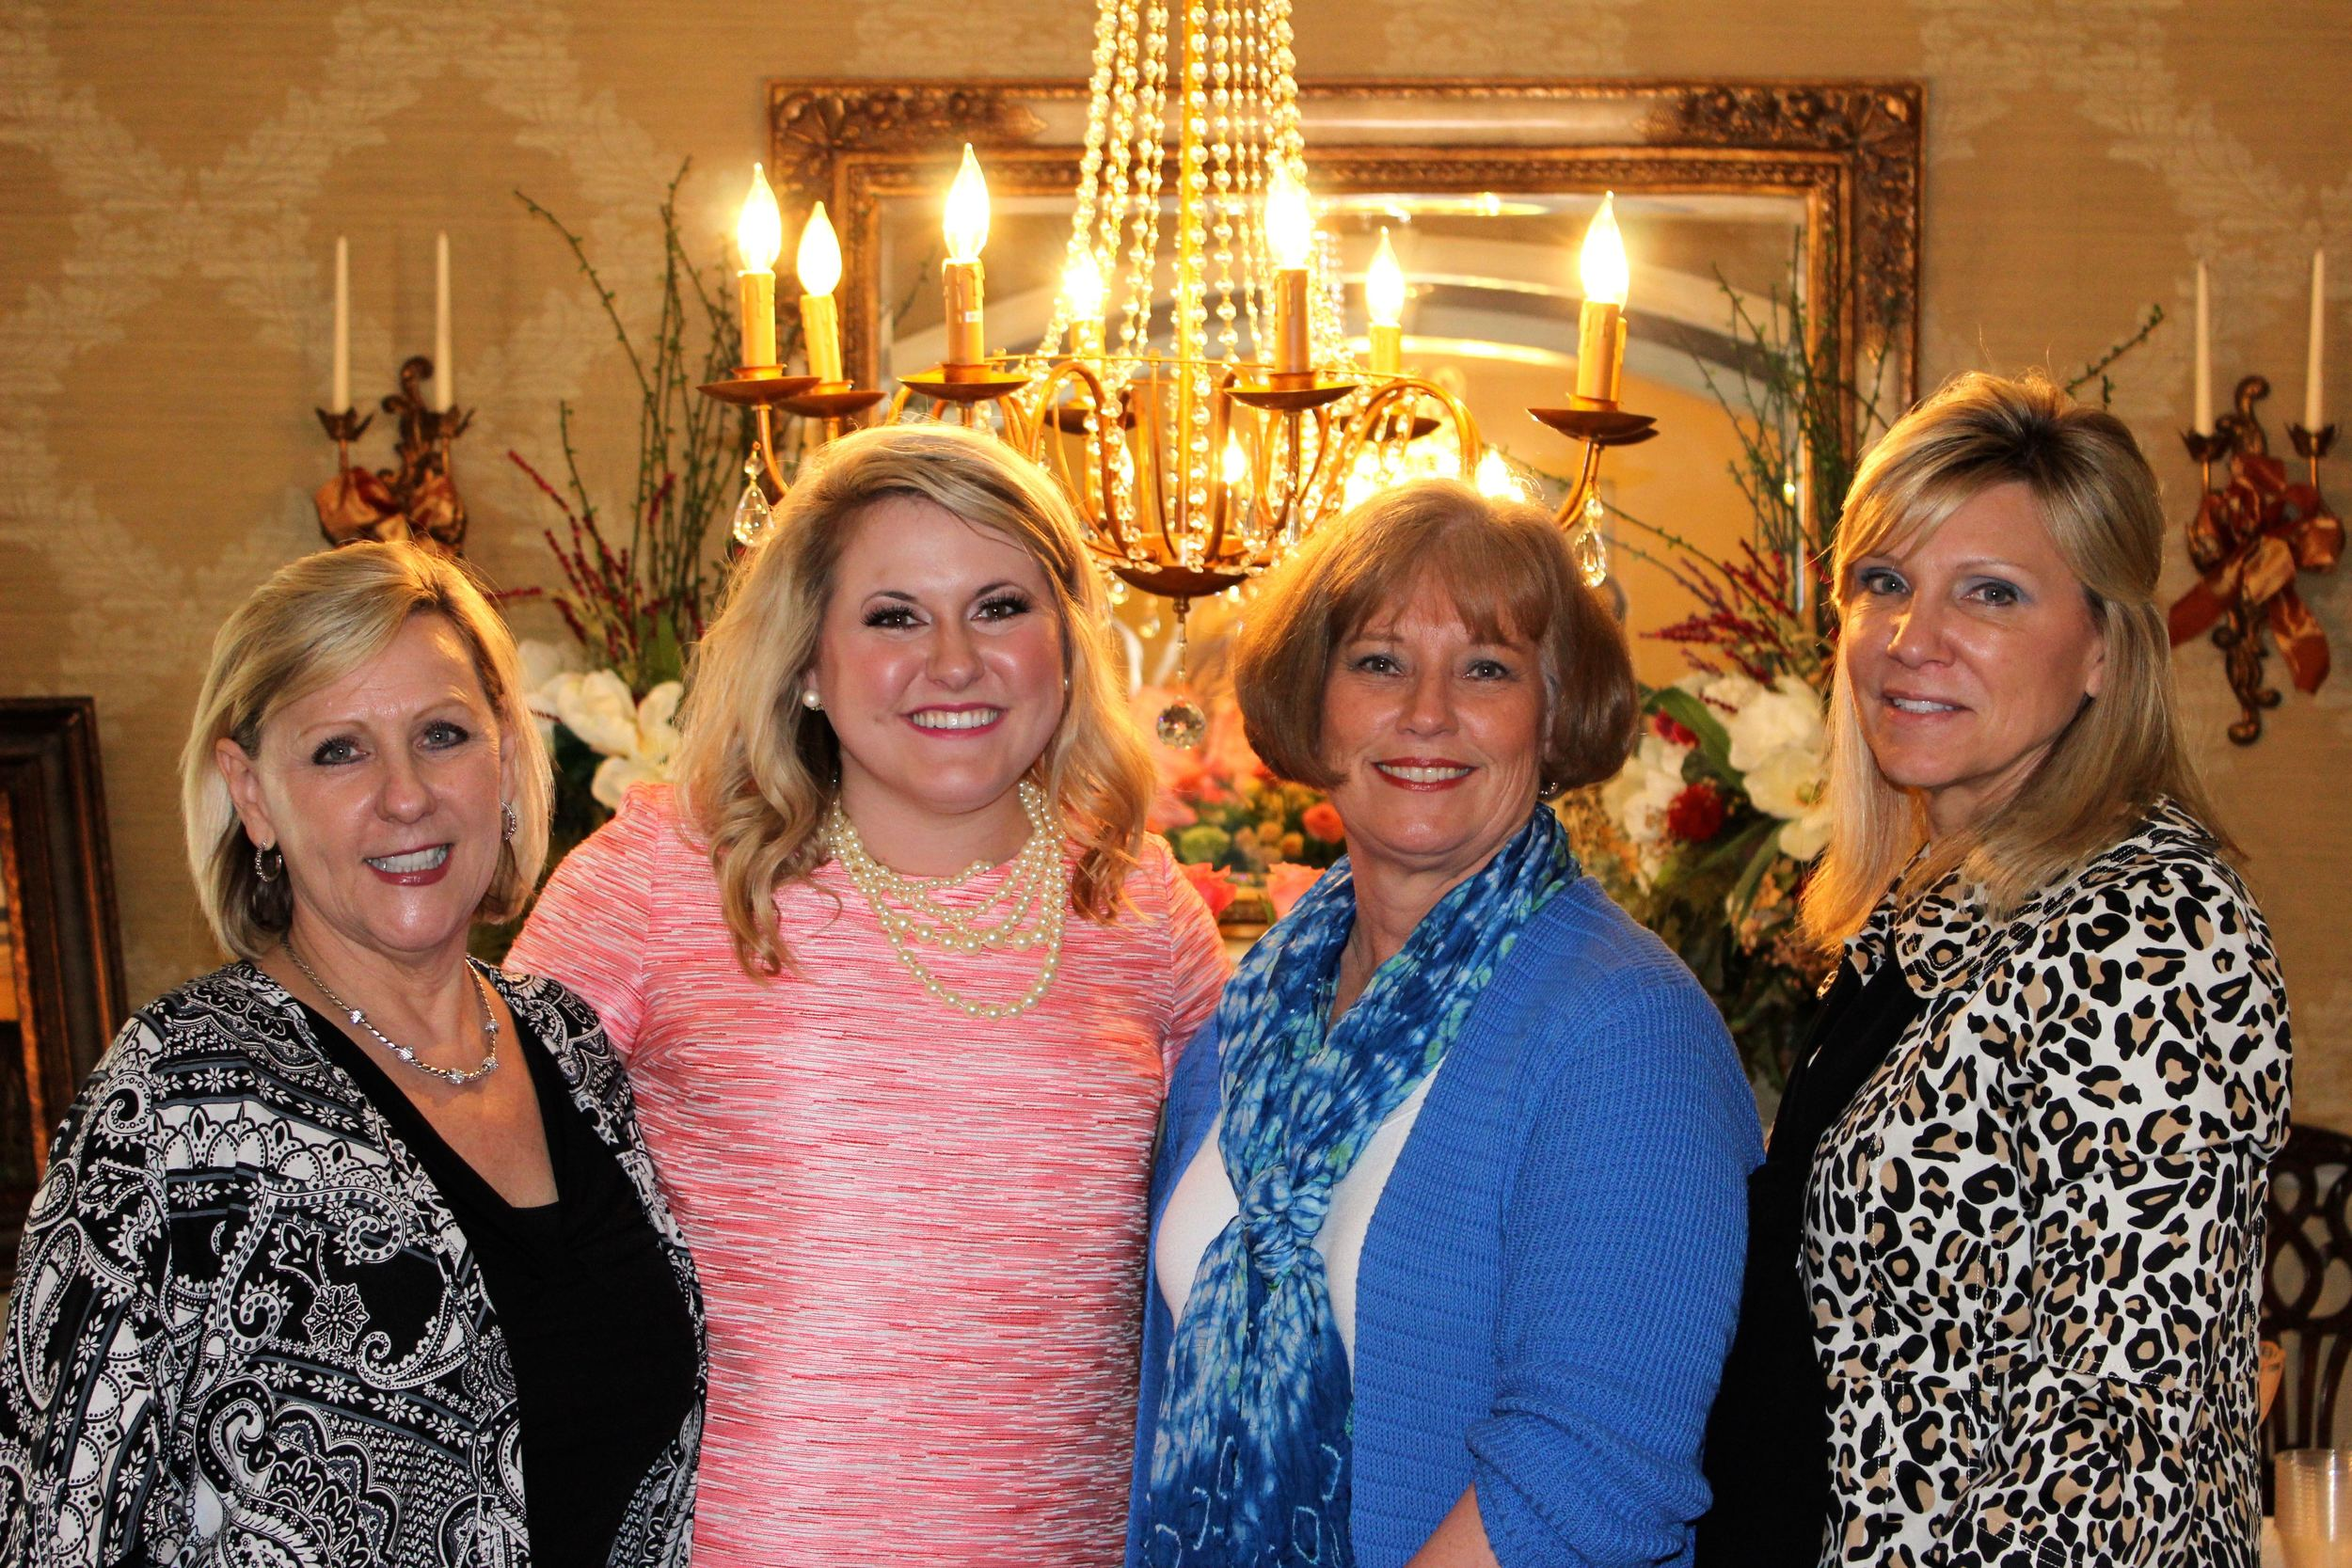 The lovely hostesses! Debbie, myself, Kathy, and Becky